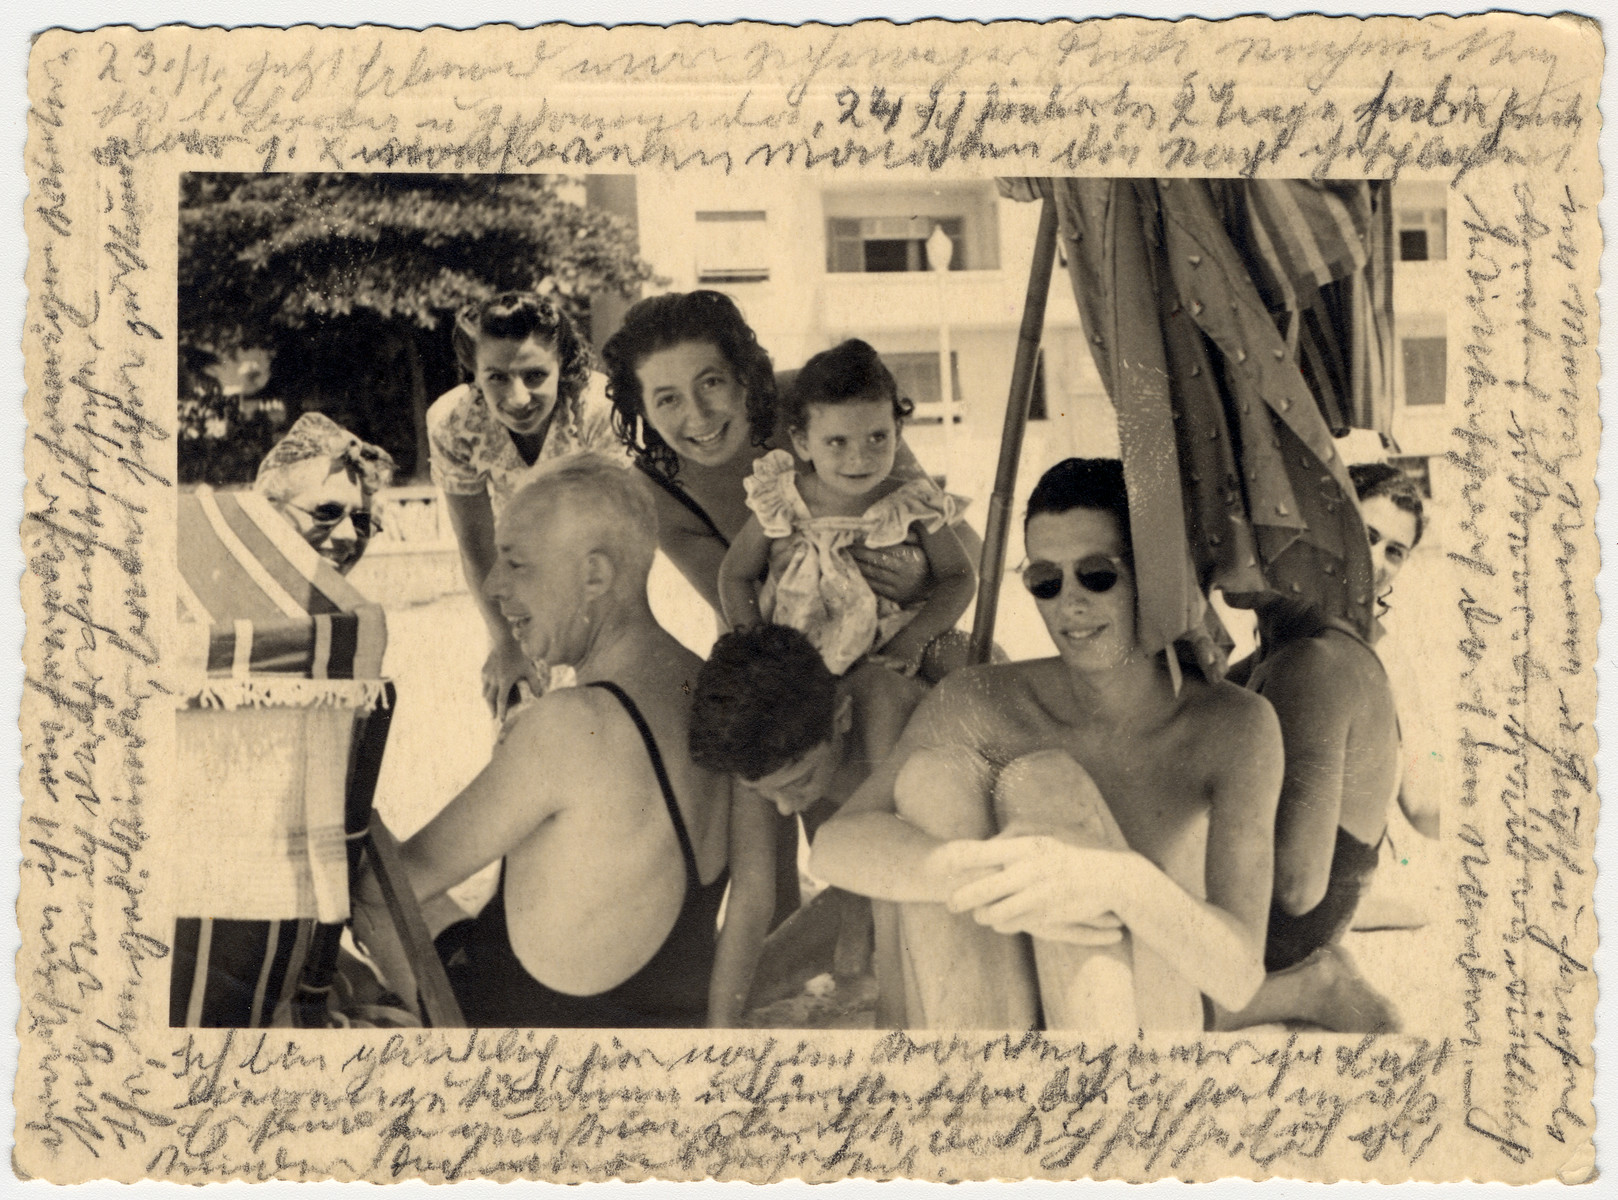 Photograph representing family members of Helene Reik and their friends gathered together in March 1941 in Brazil.    The photograph was sent to Helene Reik who used it as paper for her diary in the Theresienstadt ghetto.   The baby in the middle is Helene's Reik granddaughter Margarida Reik (now Margarida Lane Reik de Frankel), born in February 1939, and the boy on whose back she's seating is named Valerio.  Margarida's mother Charlotte is in the back.